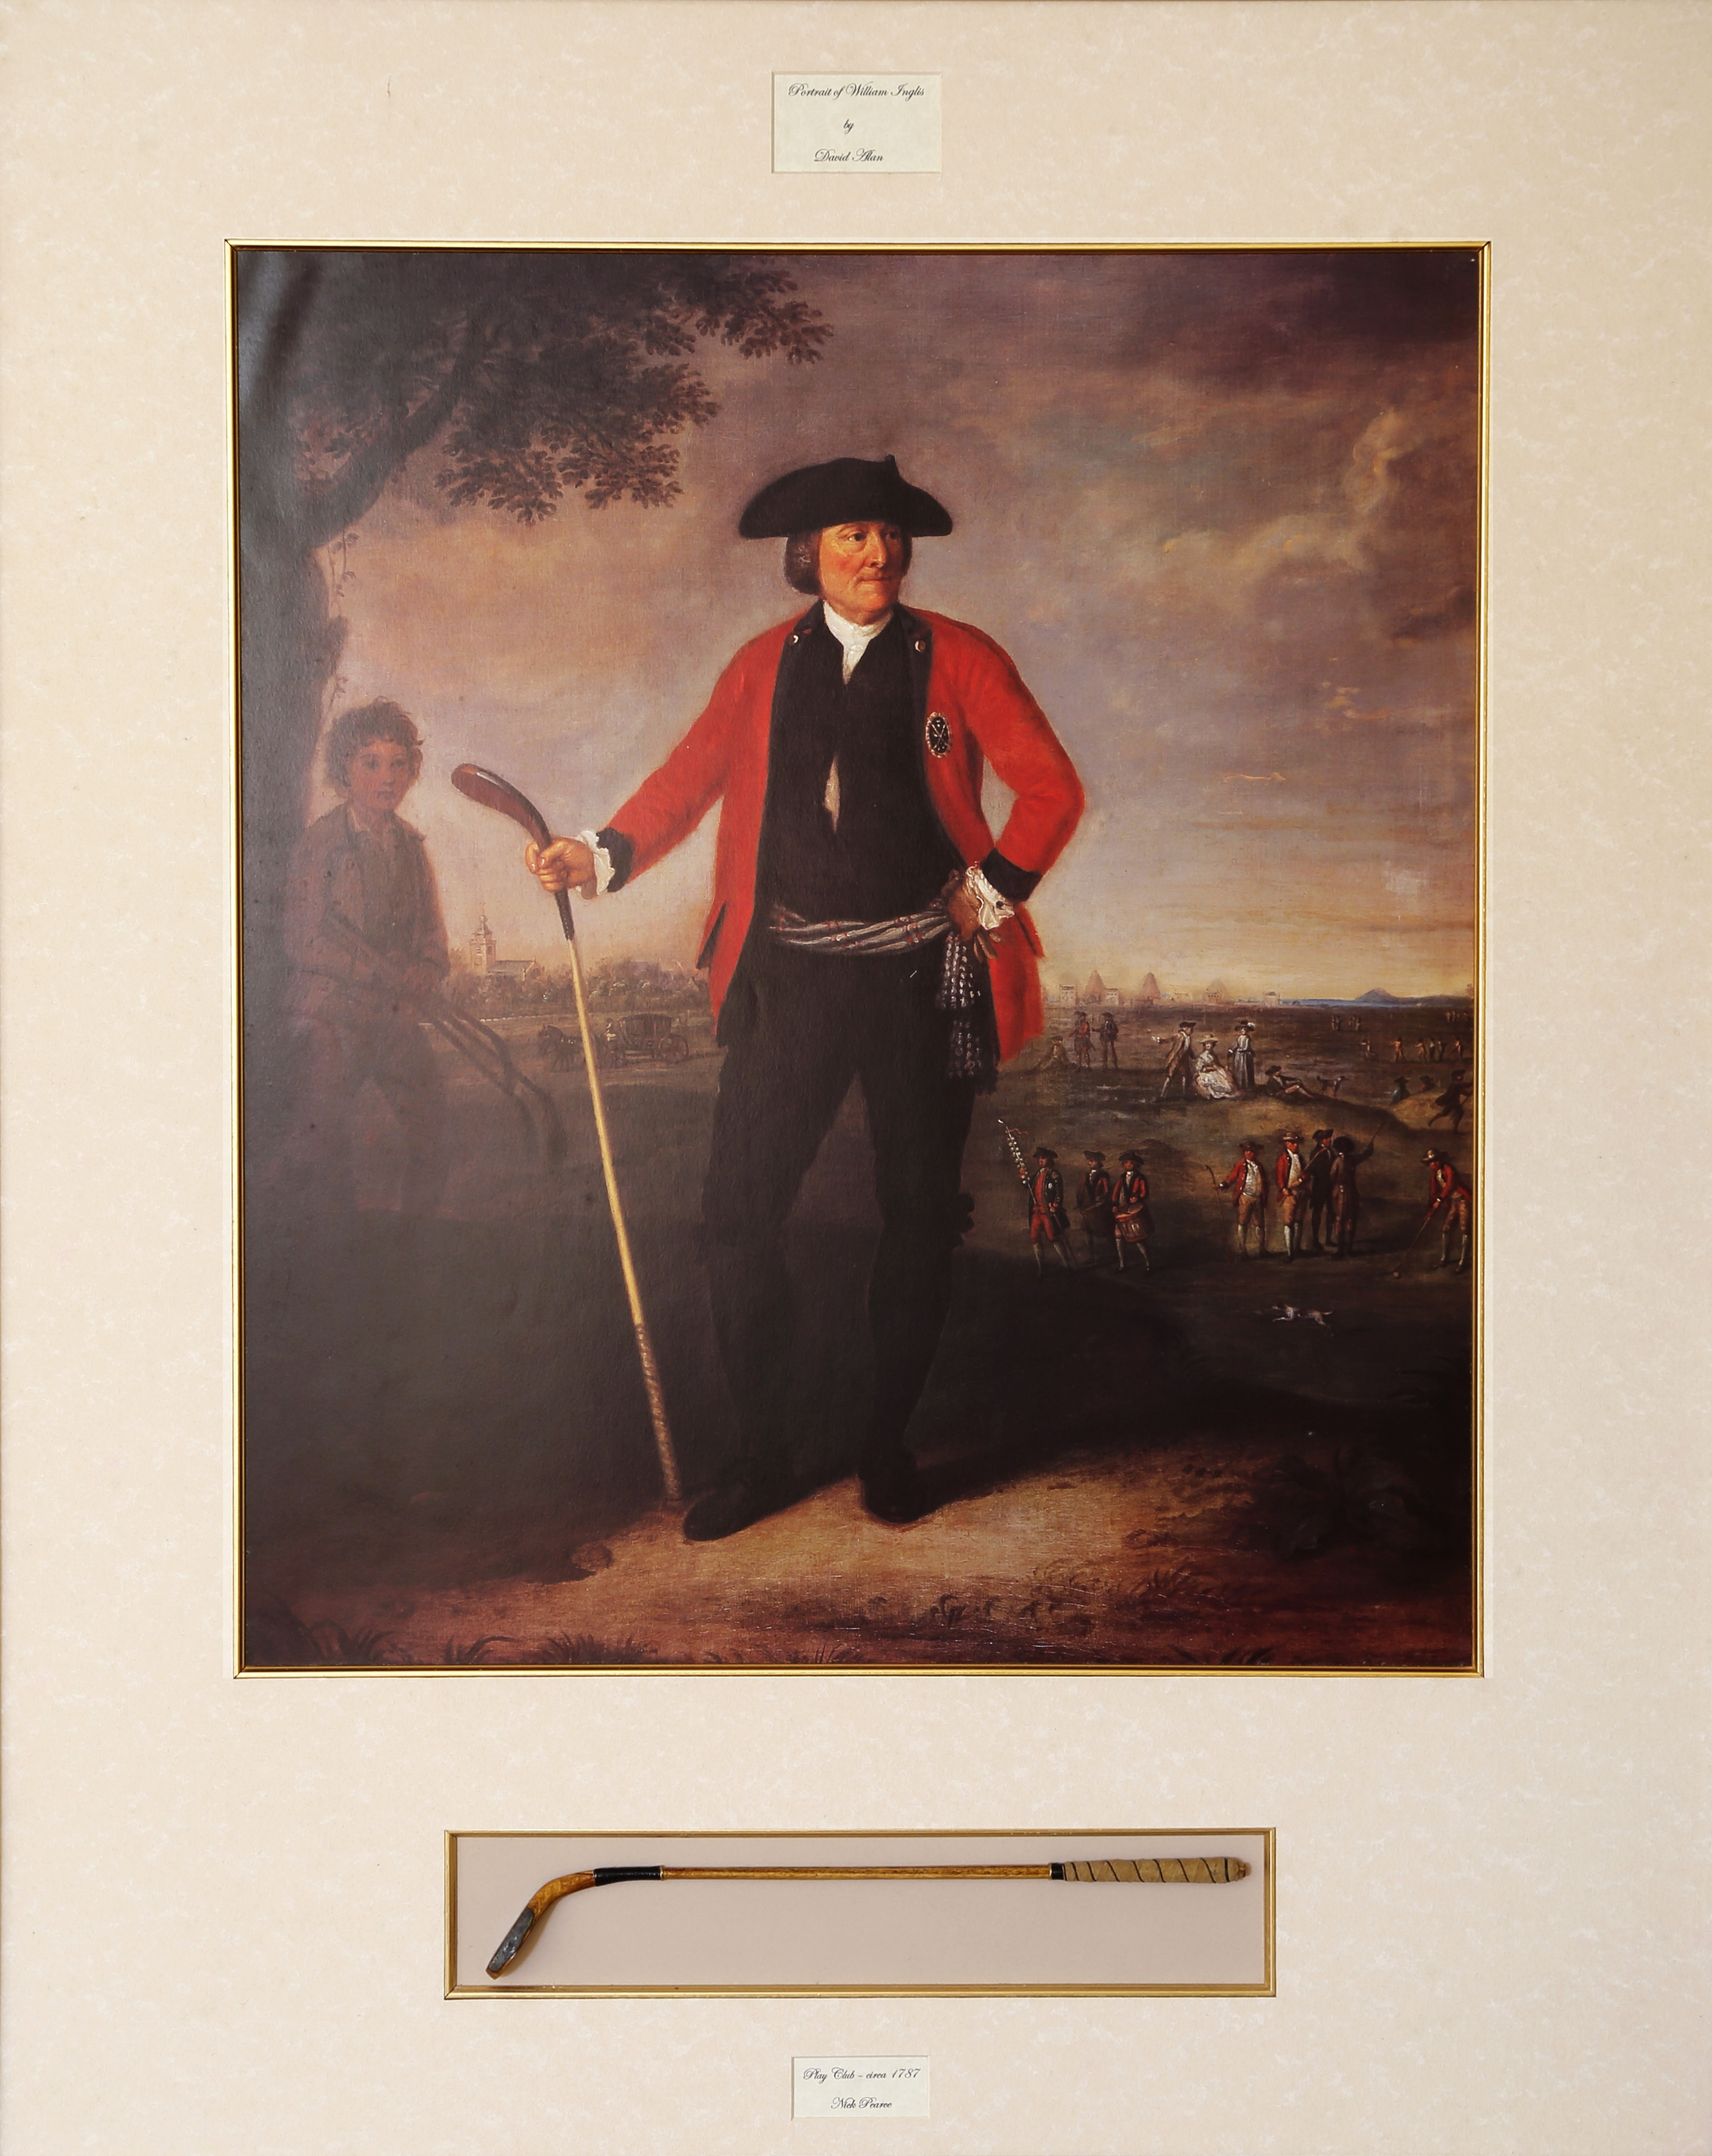 After David Allan - W. Inglis - Captain of Honourable Company, 1787